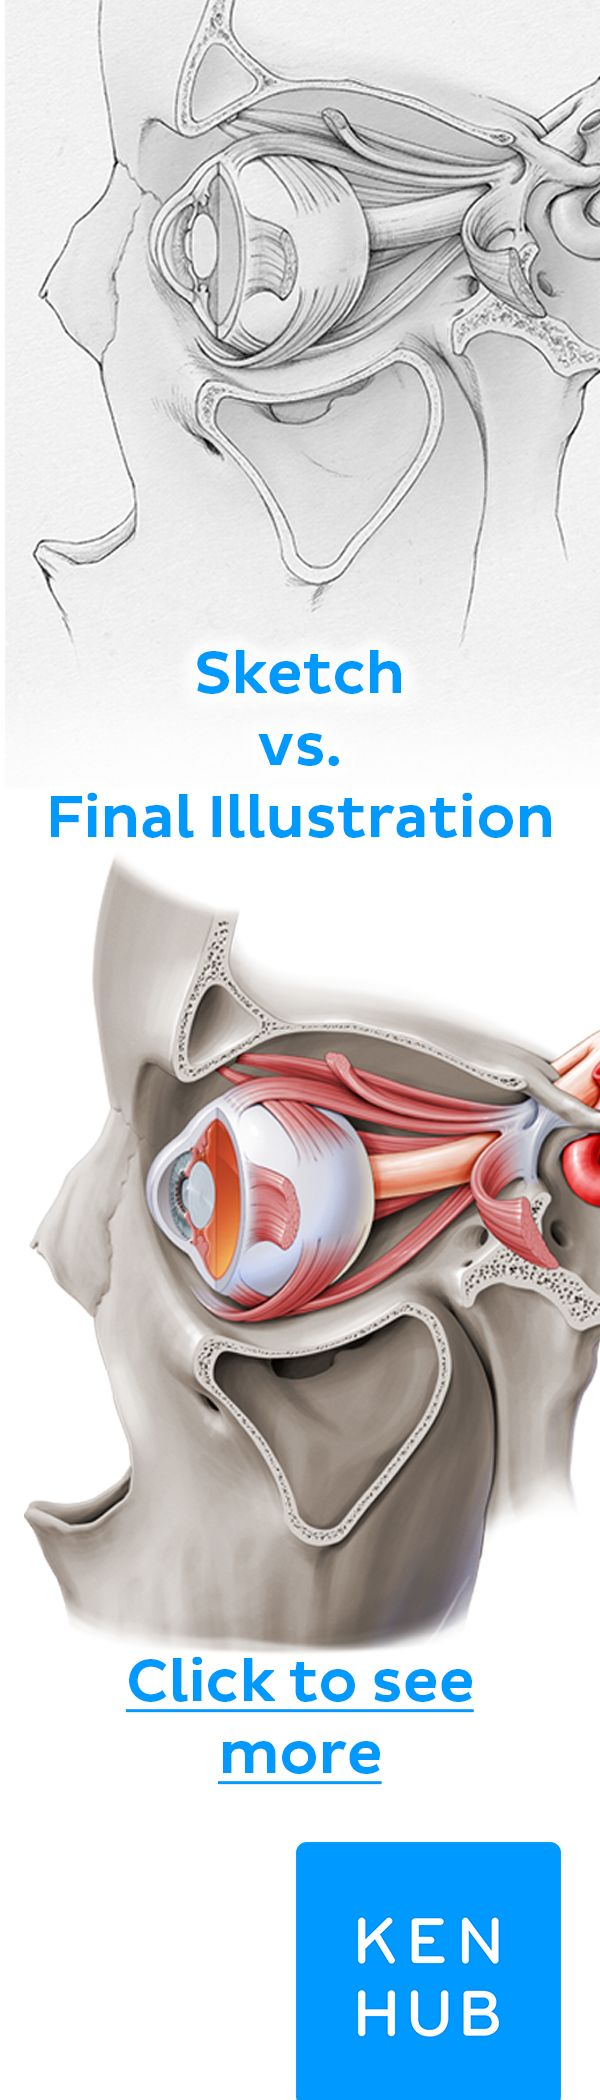 Click on the image and see all the different structures highlighted in this illustration by Paul Kim #anatomy #illustration